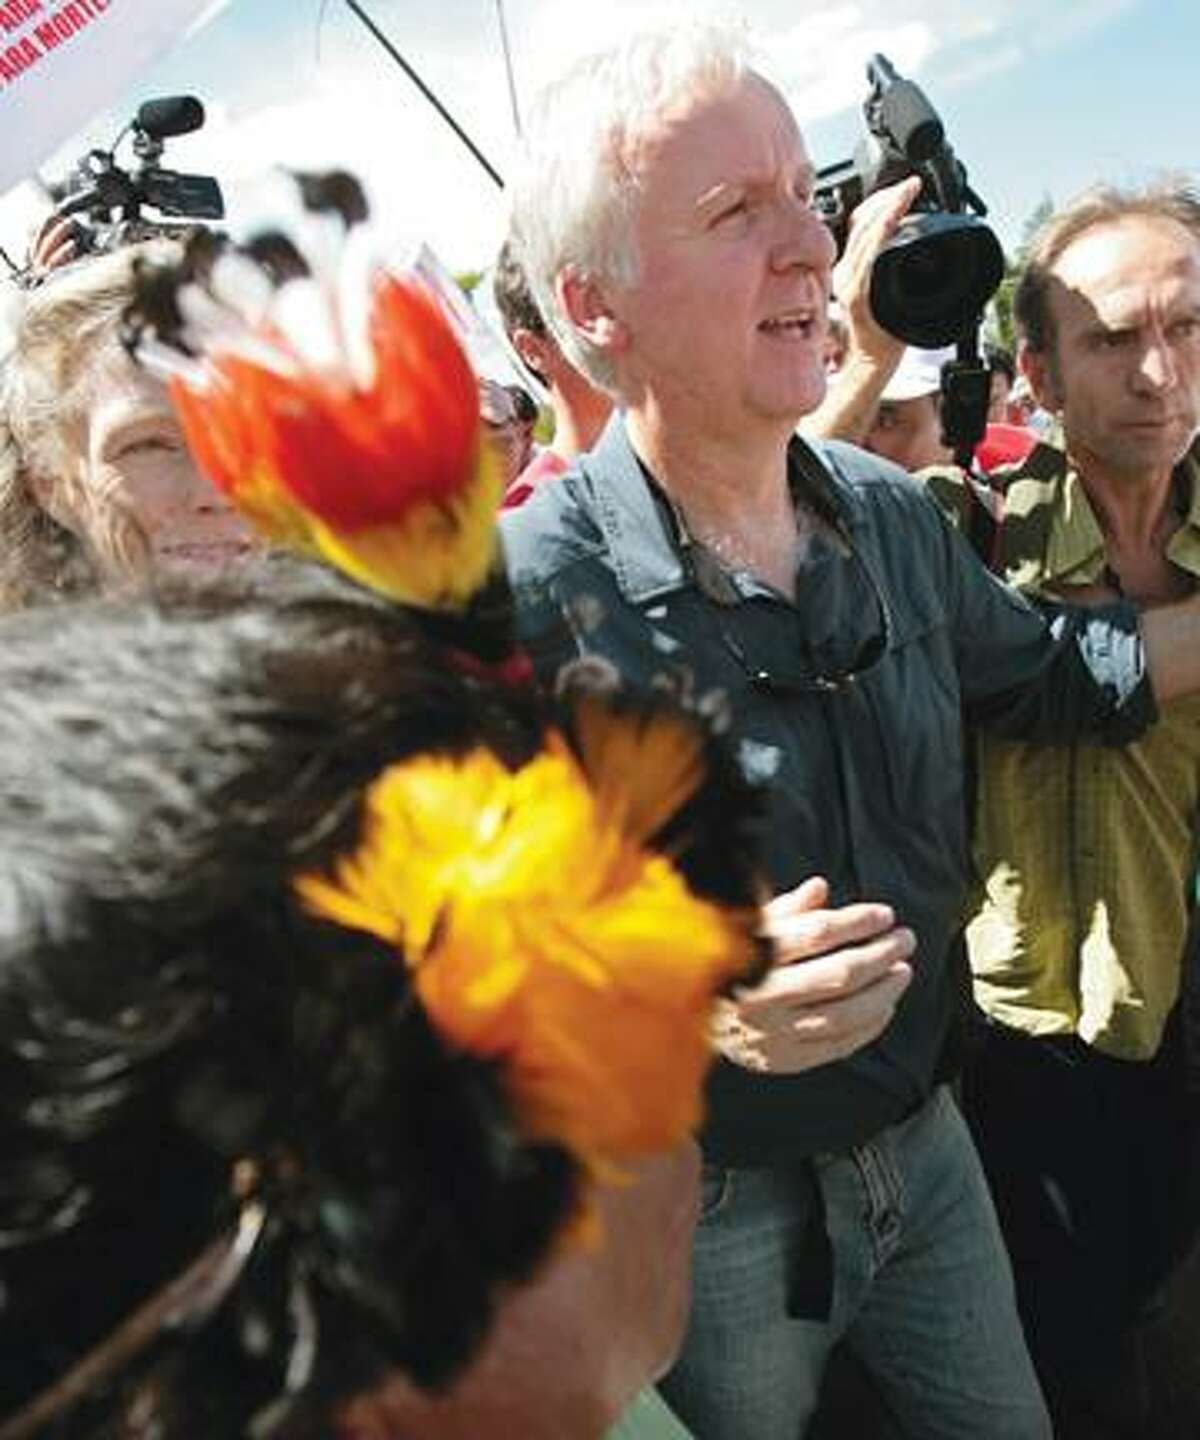 Director James Cameron marches during a protest against a proposed dam in the Amazon in Brasilia Monday. Brazil's government says the Belo Monte project will provide much-needed clean energy for the country. Indian groups say they will be displaced by the dam and environmentalists say its benefits won't make up for the damage to the jungle.(AP)